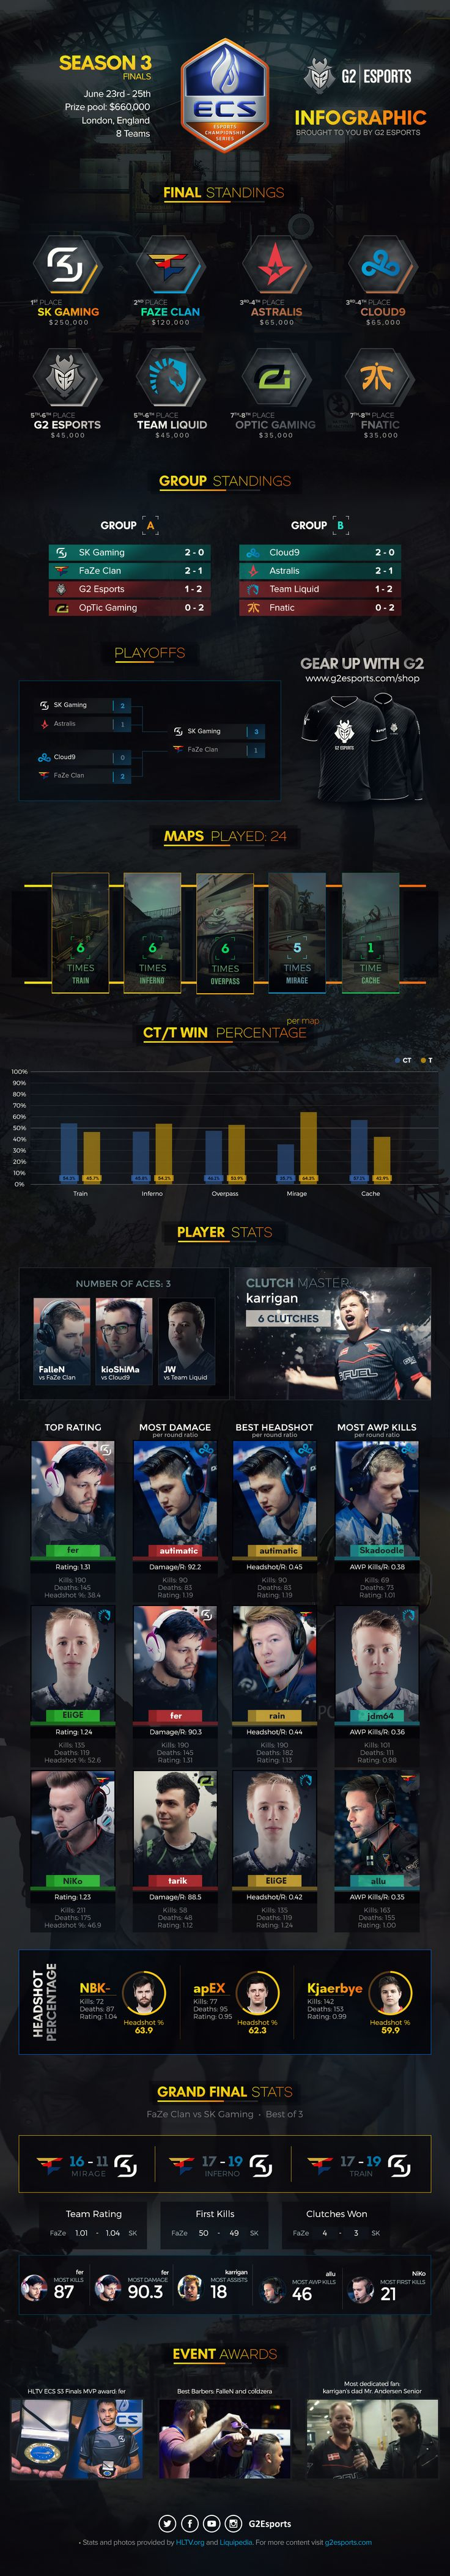 ECS S3 Infographic from G2 Esport #games #globaloffensive #CSGO #counterstrike #hltv #CS #steam #Valve #djswat #CS16